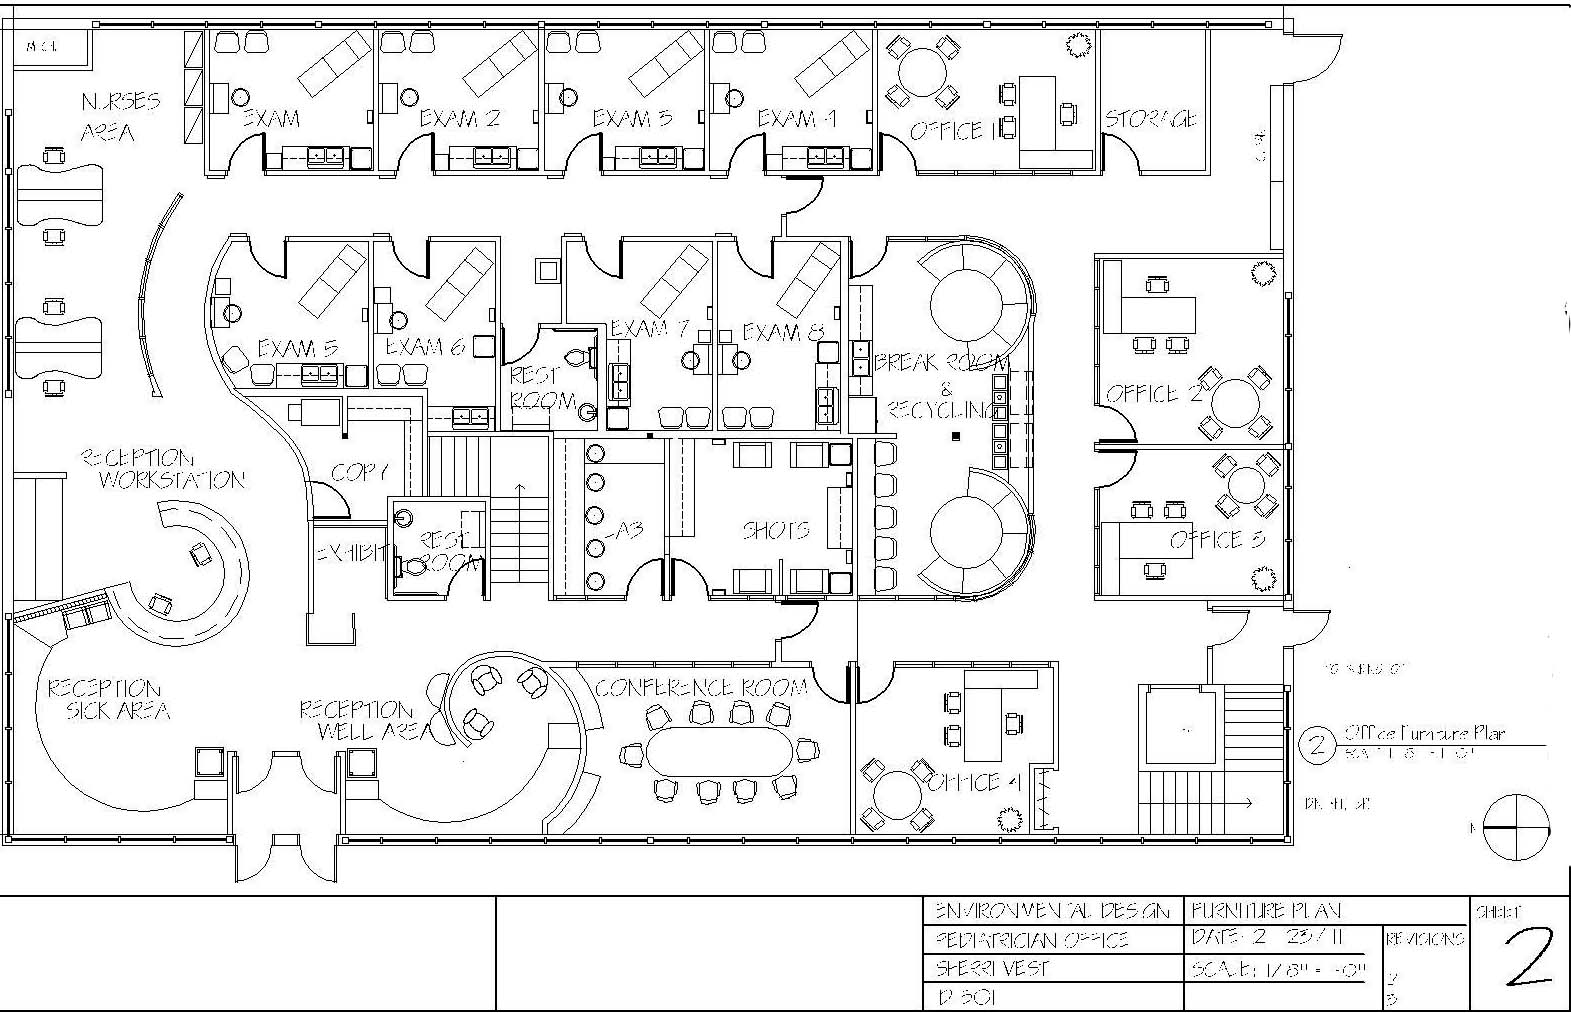 Pediatric office floor plan by sherri vest at for Web design blueprints